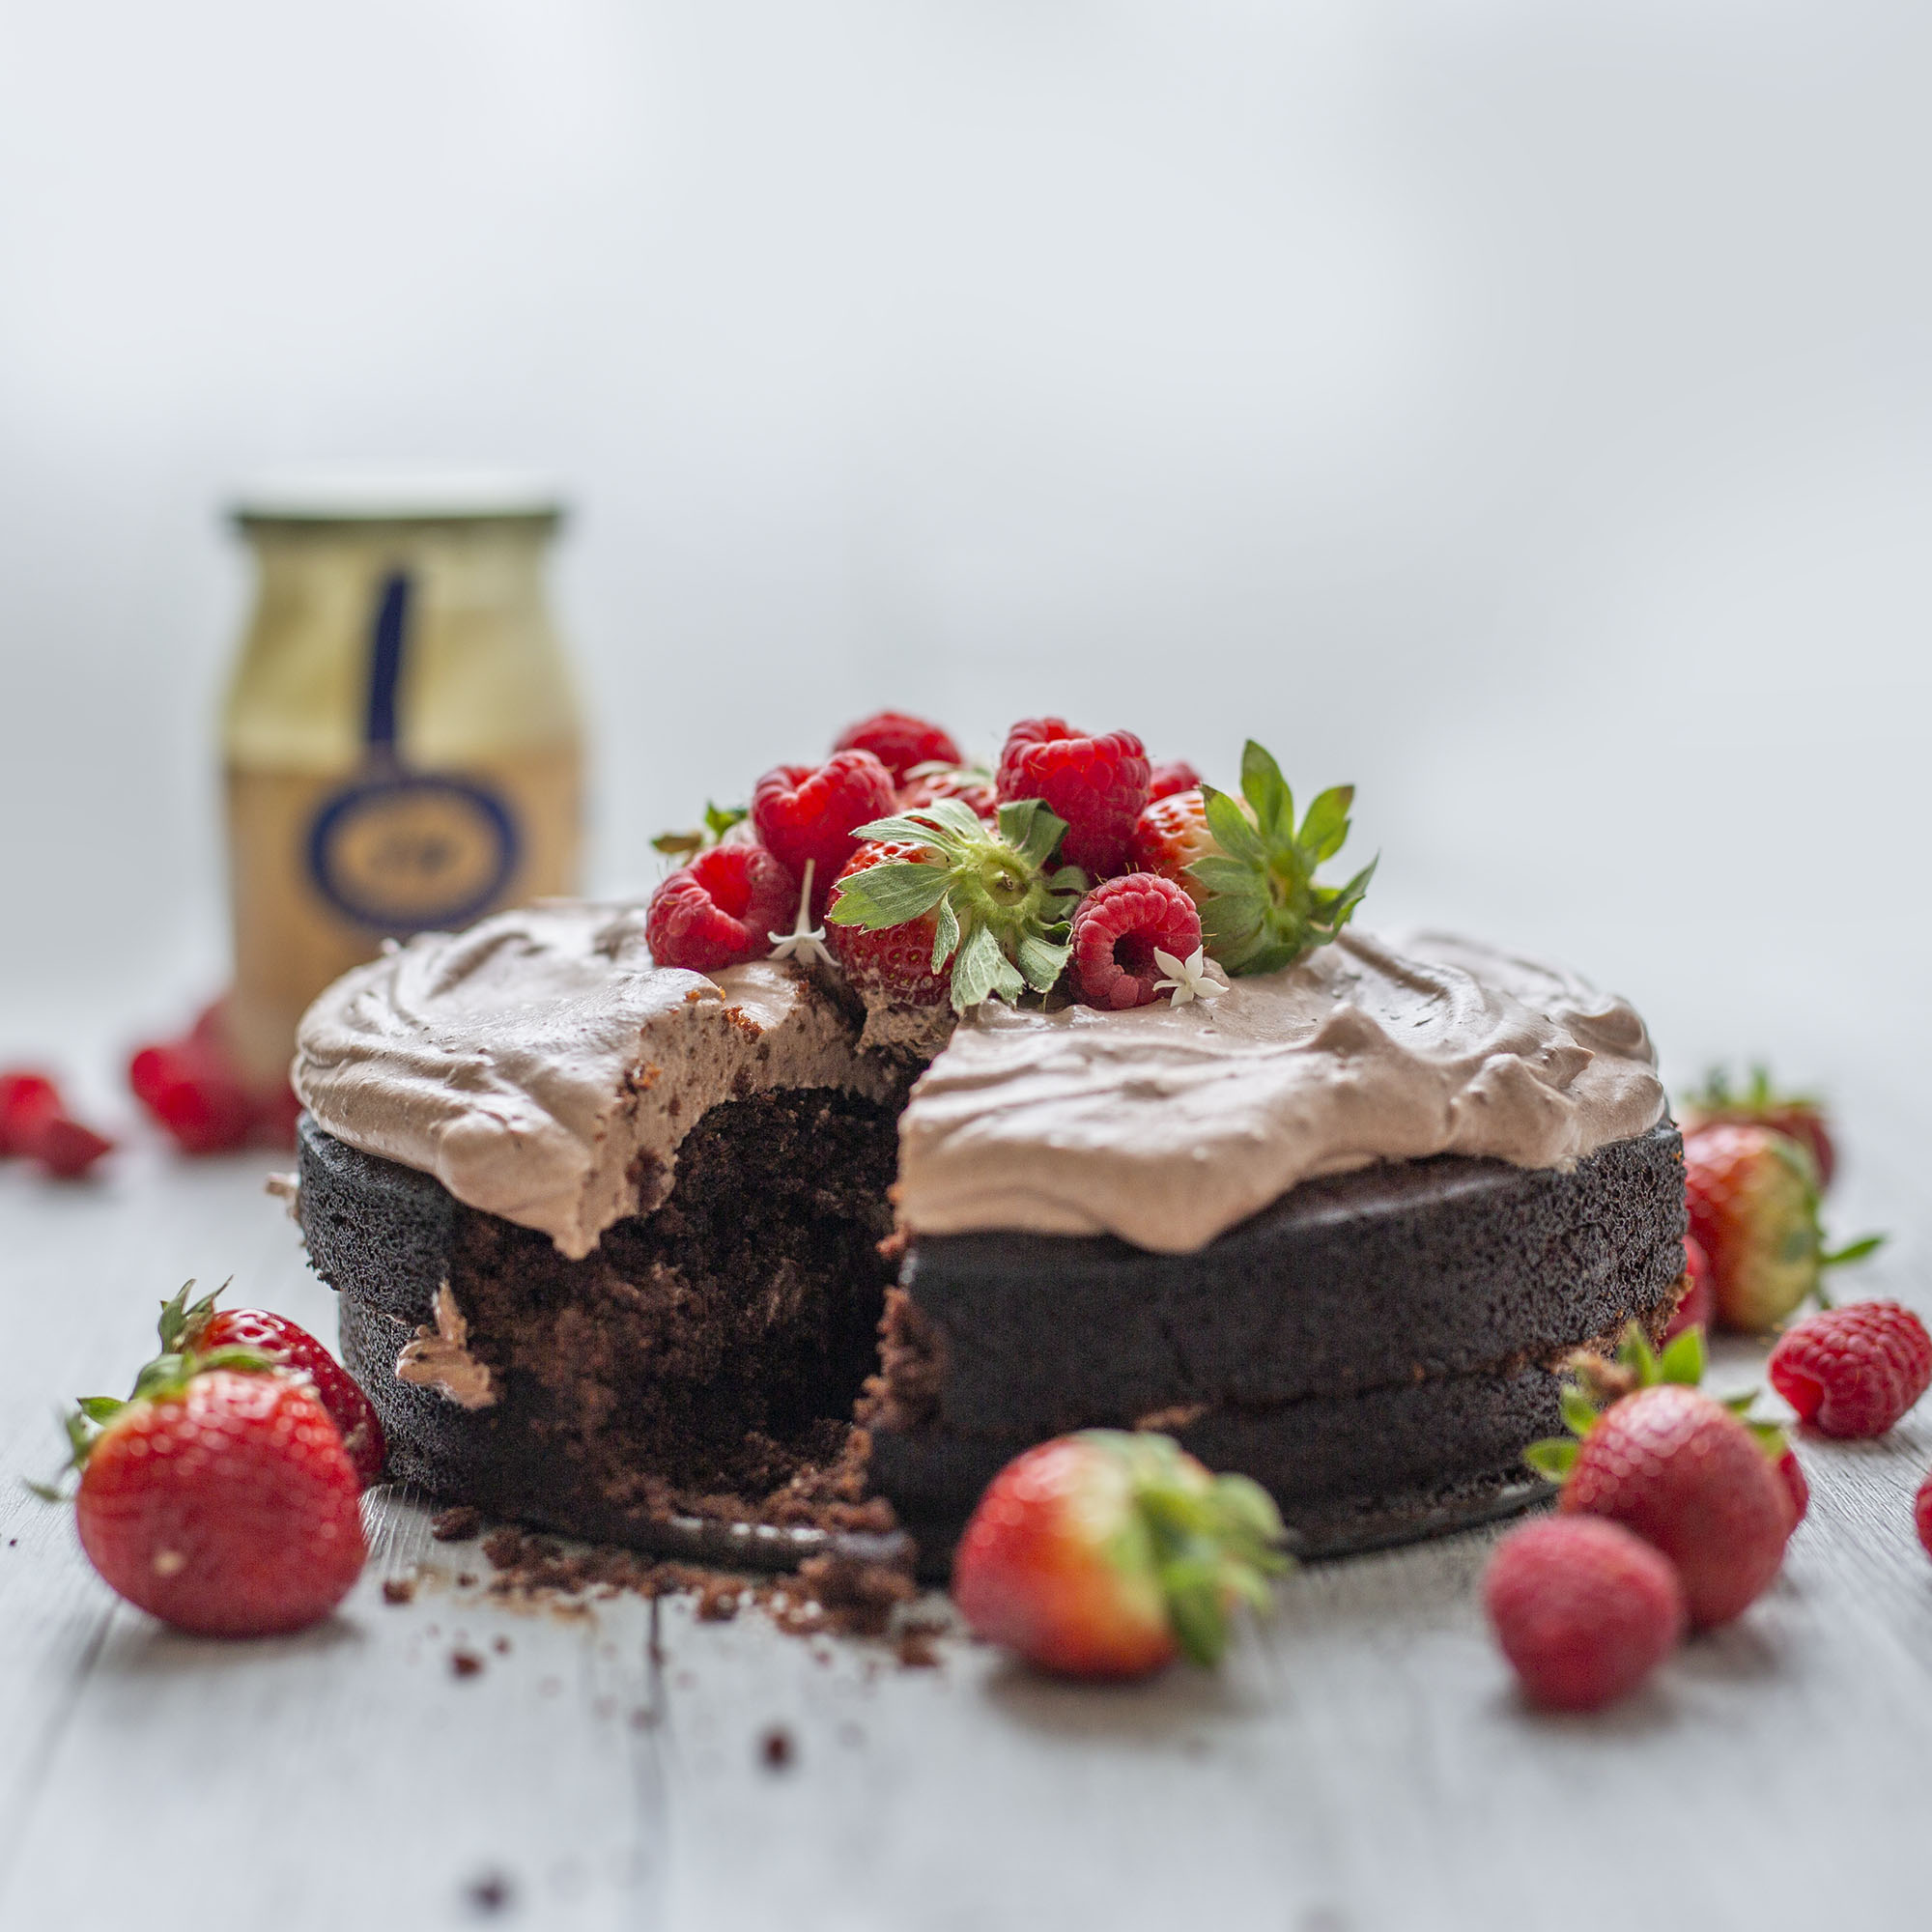 Vegan Chocolate Mayonnaise Cake